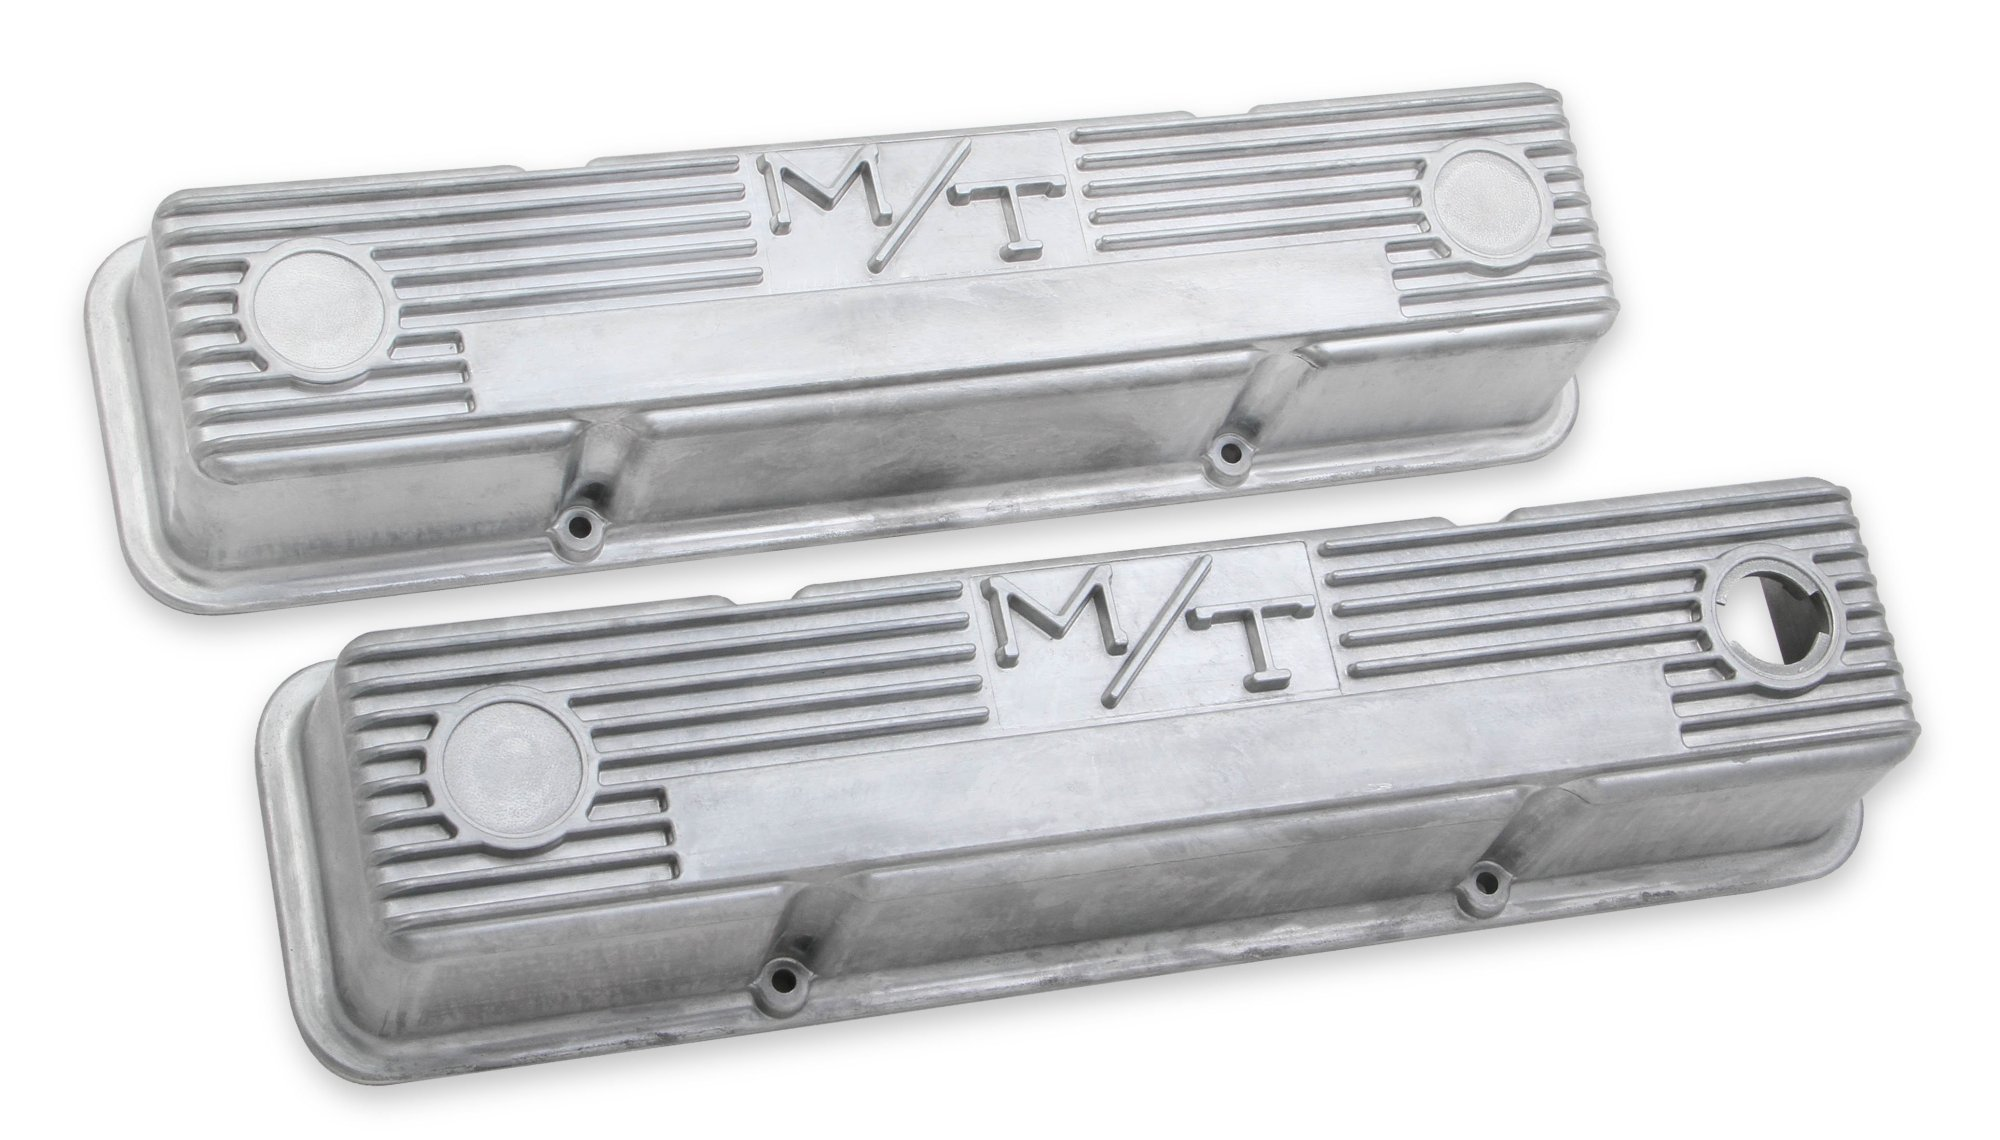 hight resolution of 241 86 m t valve covers for small block chevy engines natural